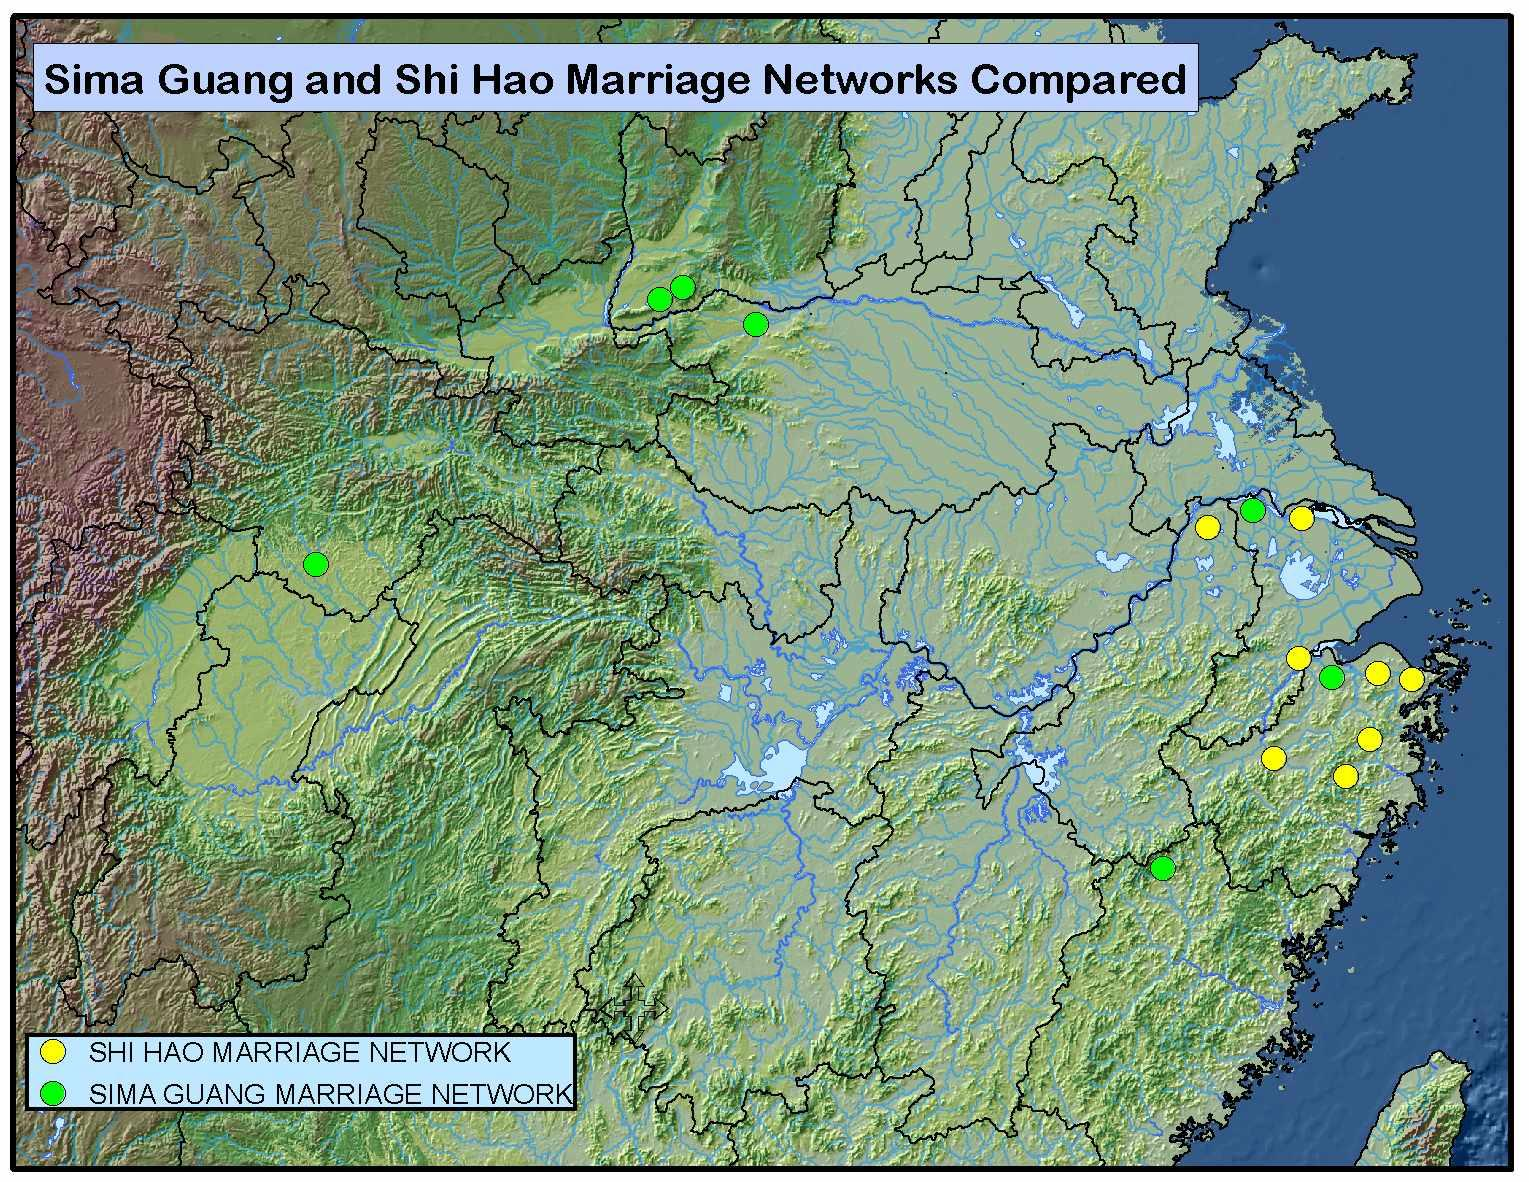 Sima Guang and Shi Hao Marriage Networks Compared